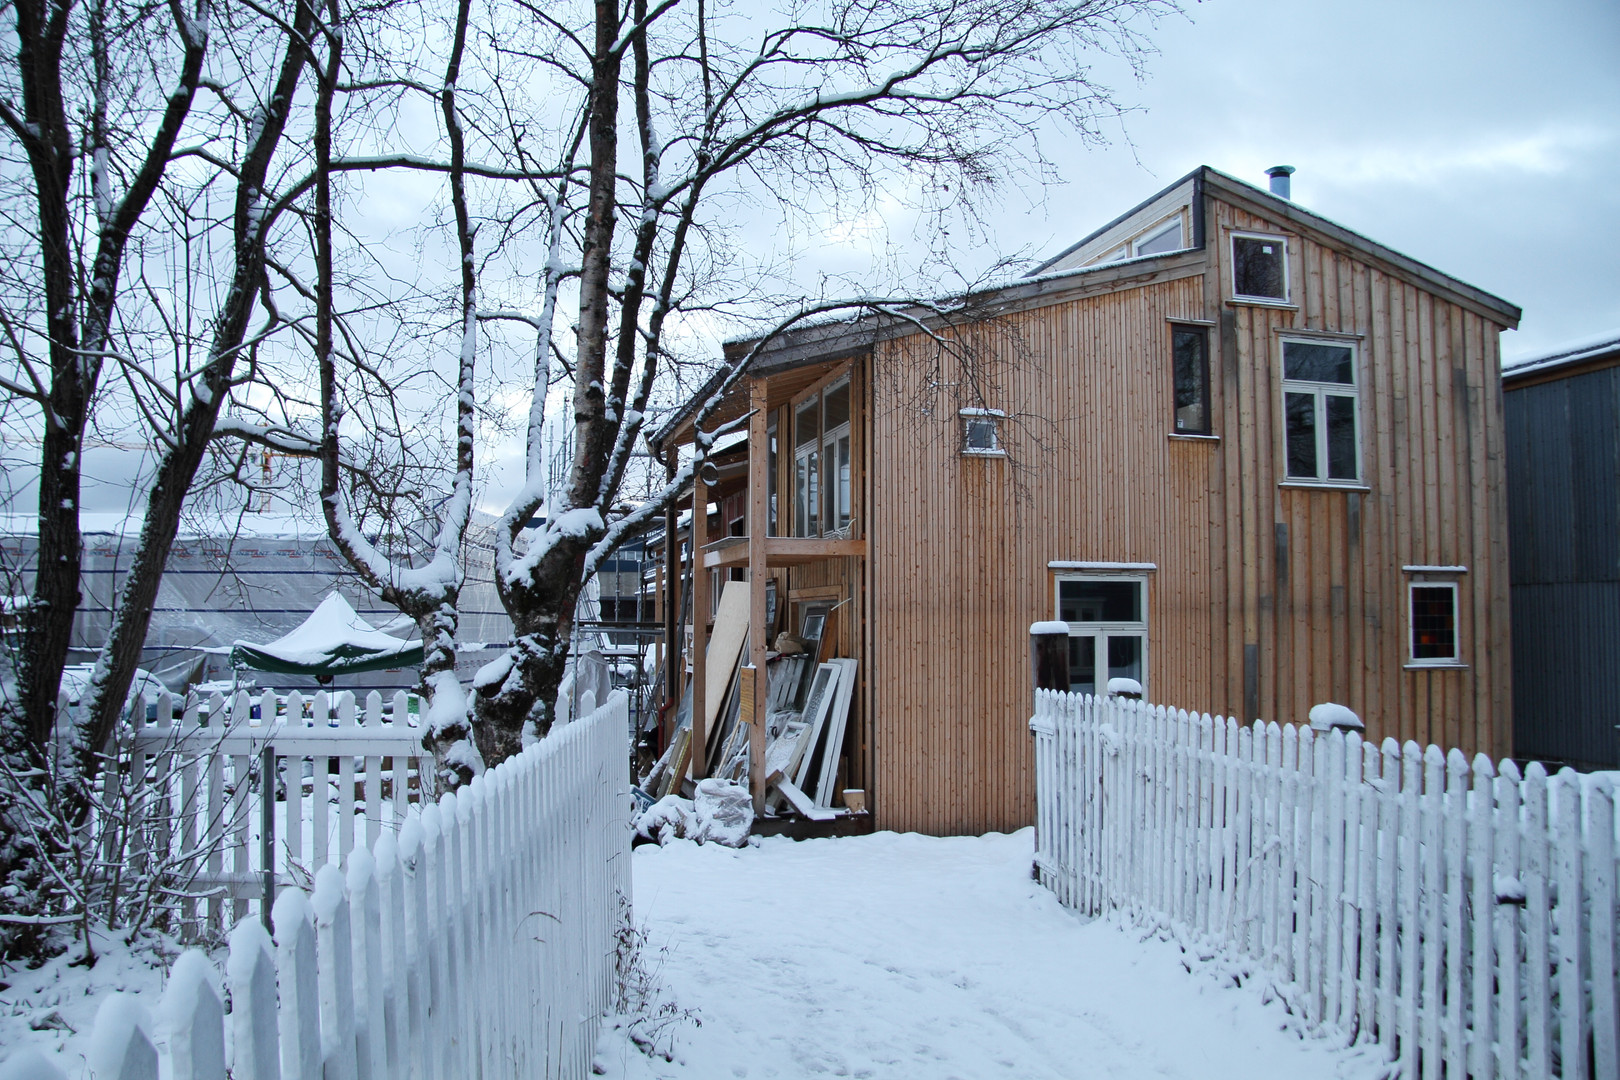 Guro og Johns hus, vinter